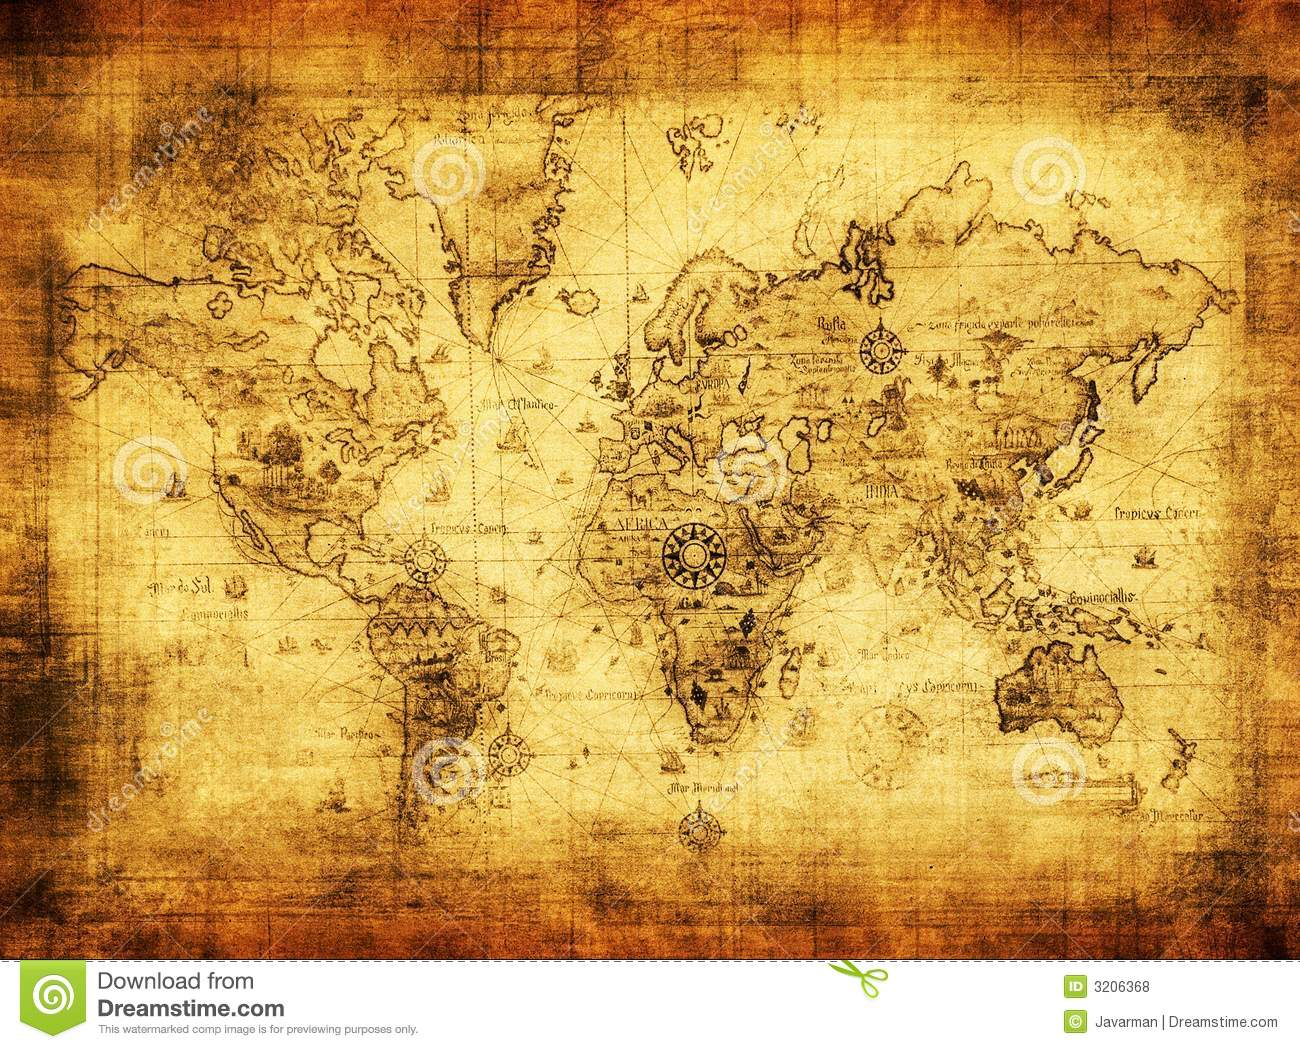 Ancient Map Of The World Royalty Free Stock Photos - Image: 3206368